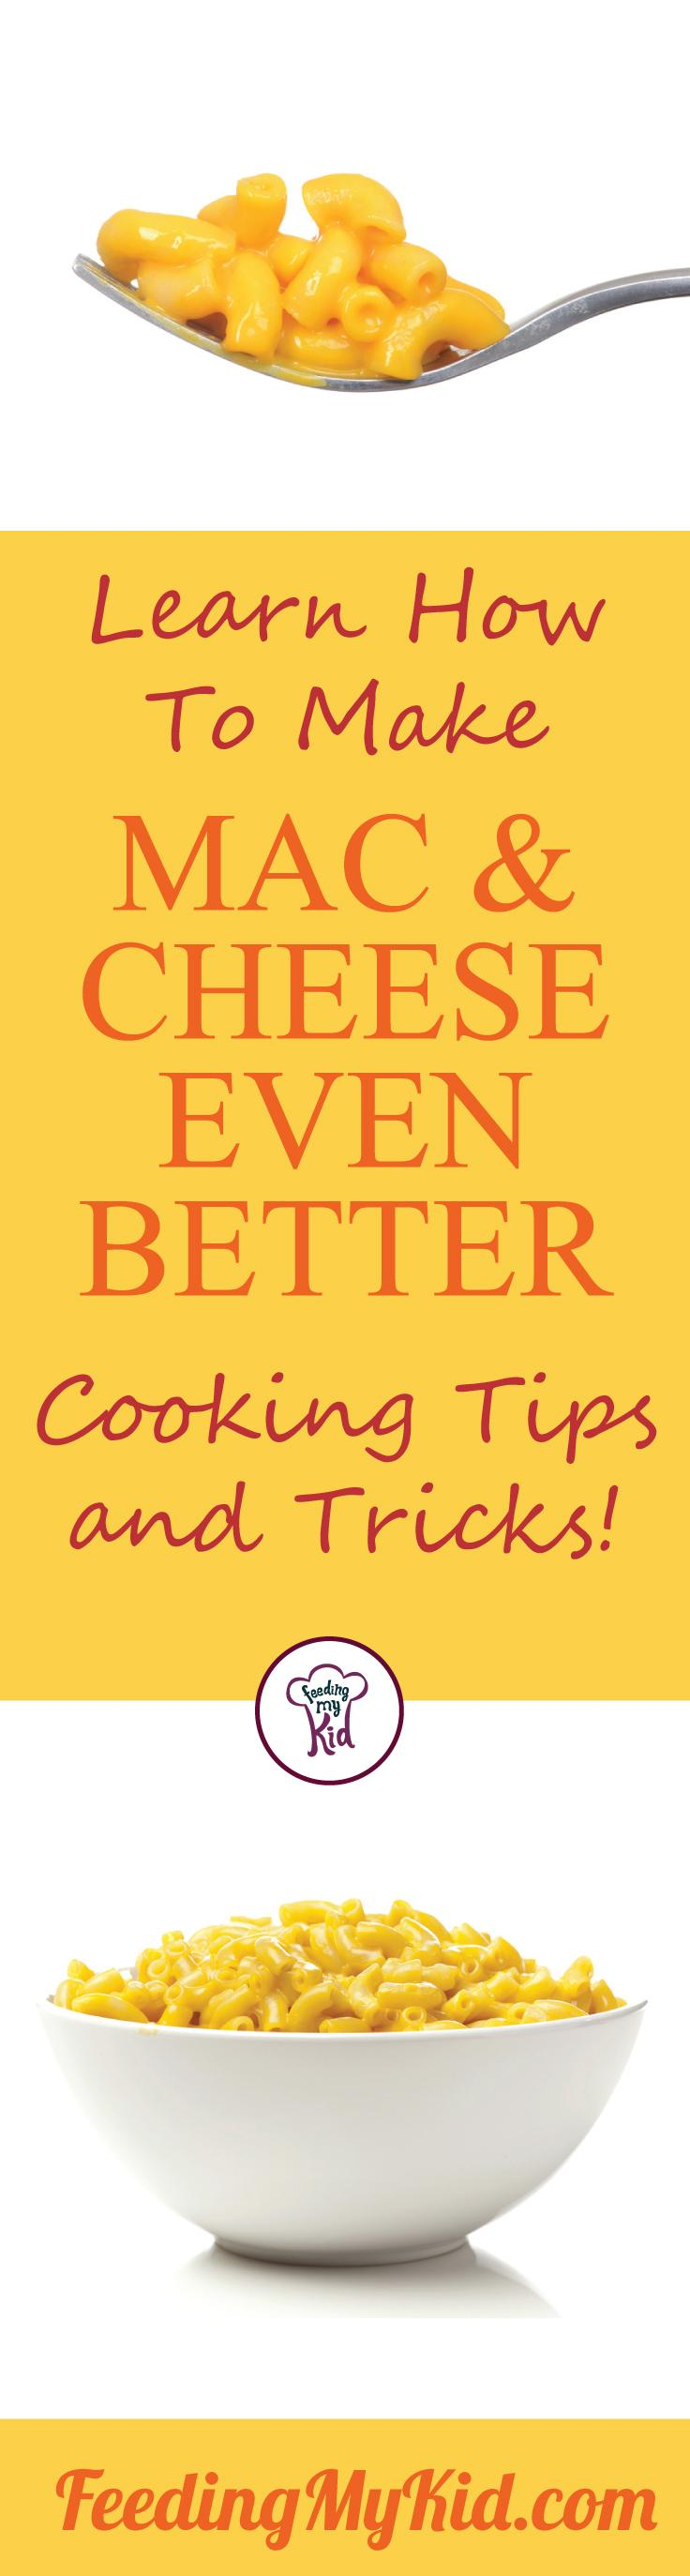 Try these tips and hacks to make the best mac and cheese recipe ever! Everyone will love this! It's the best mac and cheese tips you'll ever have! Feeding My Kid is a filled with all the information you need about how to raise your kids, from healthy tips to nutritious recipes. #FeedingMyKid #pasta #recipes #dinner #macandcheese